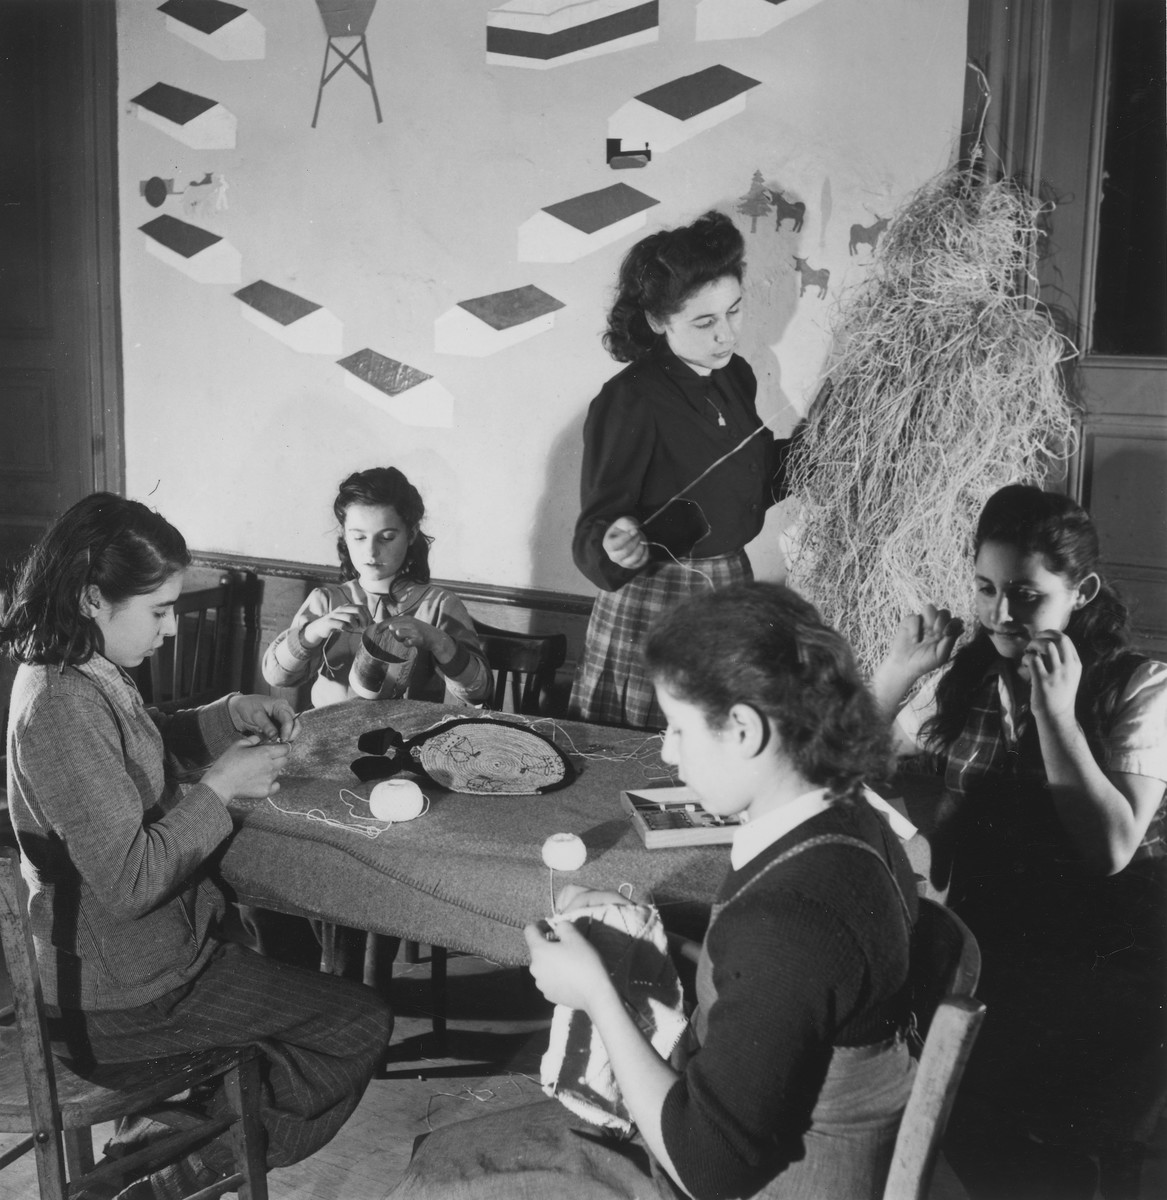 A group of girls makes hand crafts with string in an unidentified post-war OSE children's home.